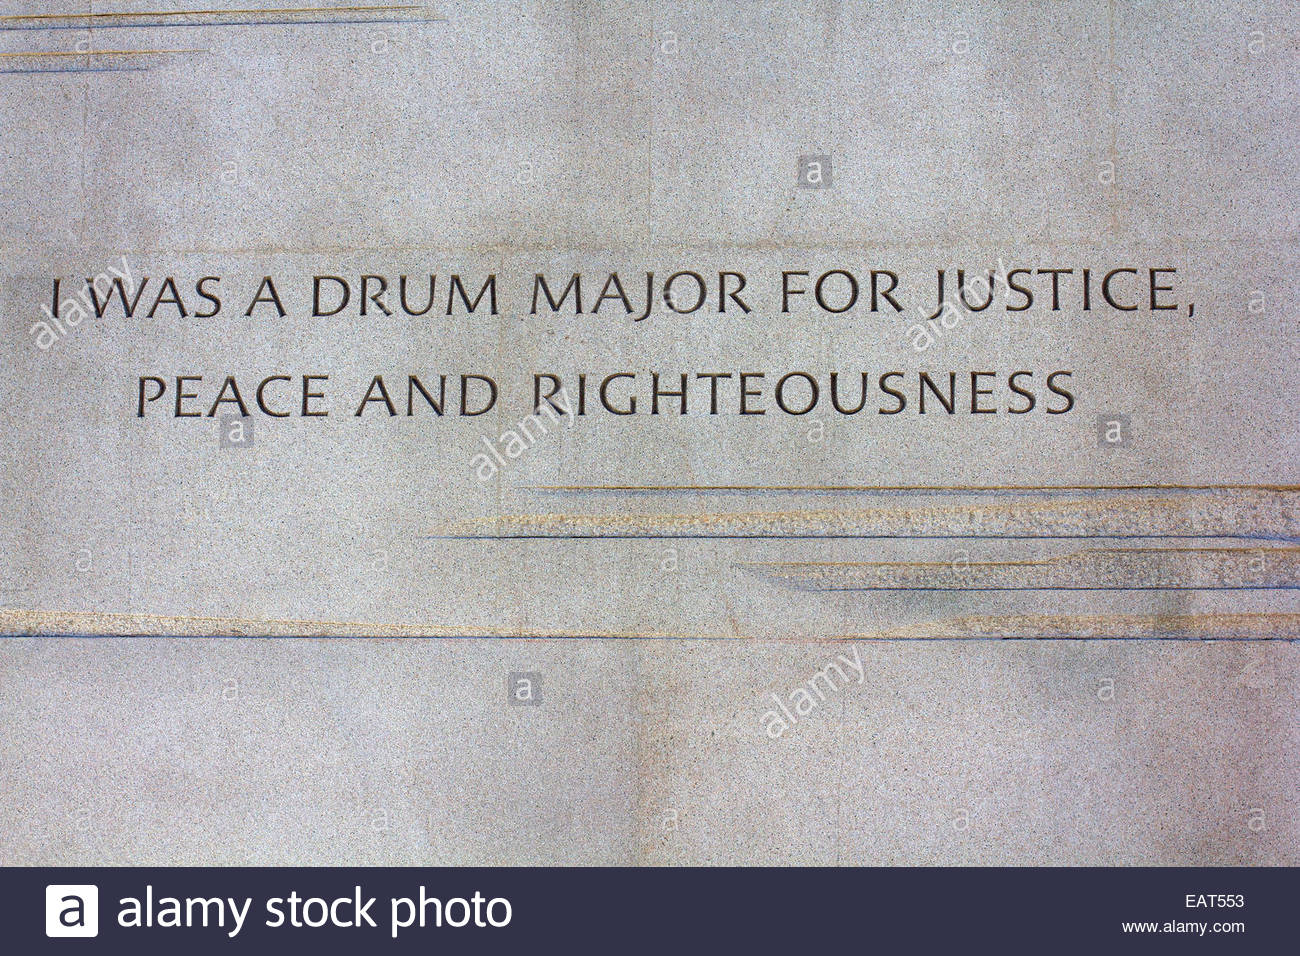 Controversial paraphrased quote on the Martin Luther King Jr. Memorial. - Stock Image